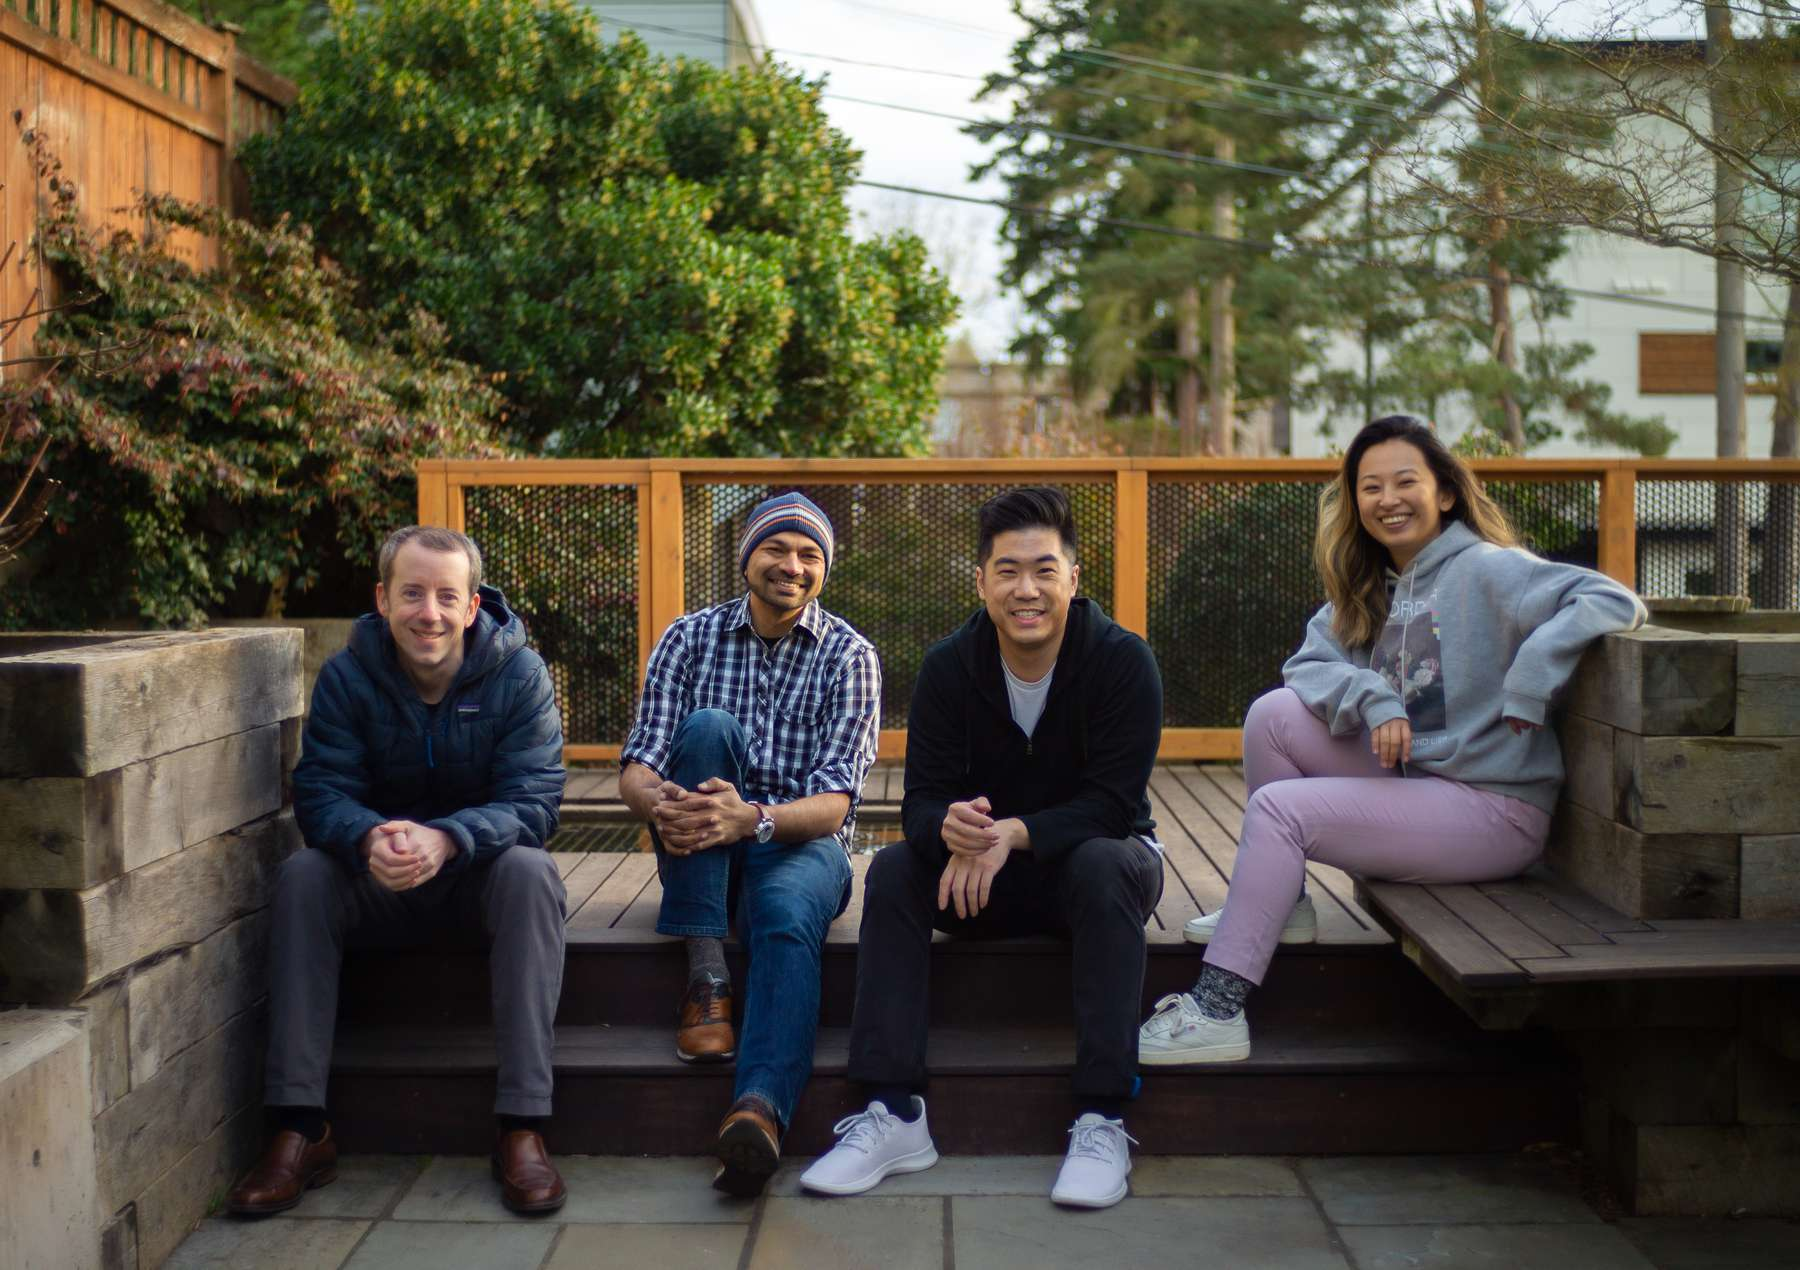 The Common Room founding team (from left to right) Tom Kleinpeter, Viraj Mody, Francis Luu, and Linda Lian